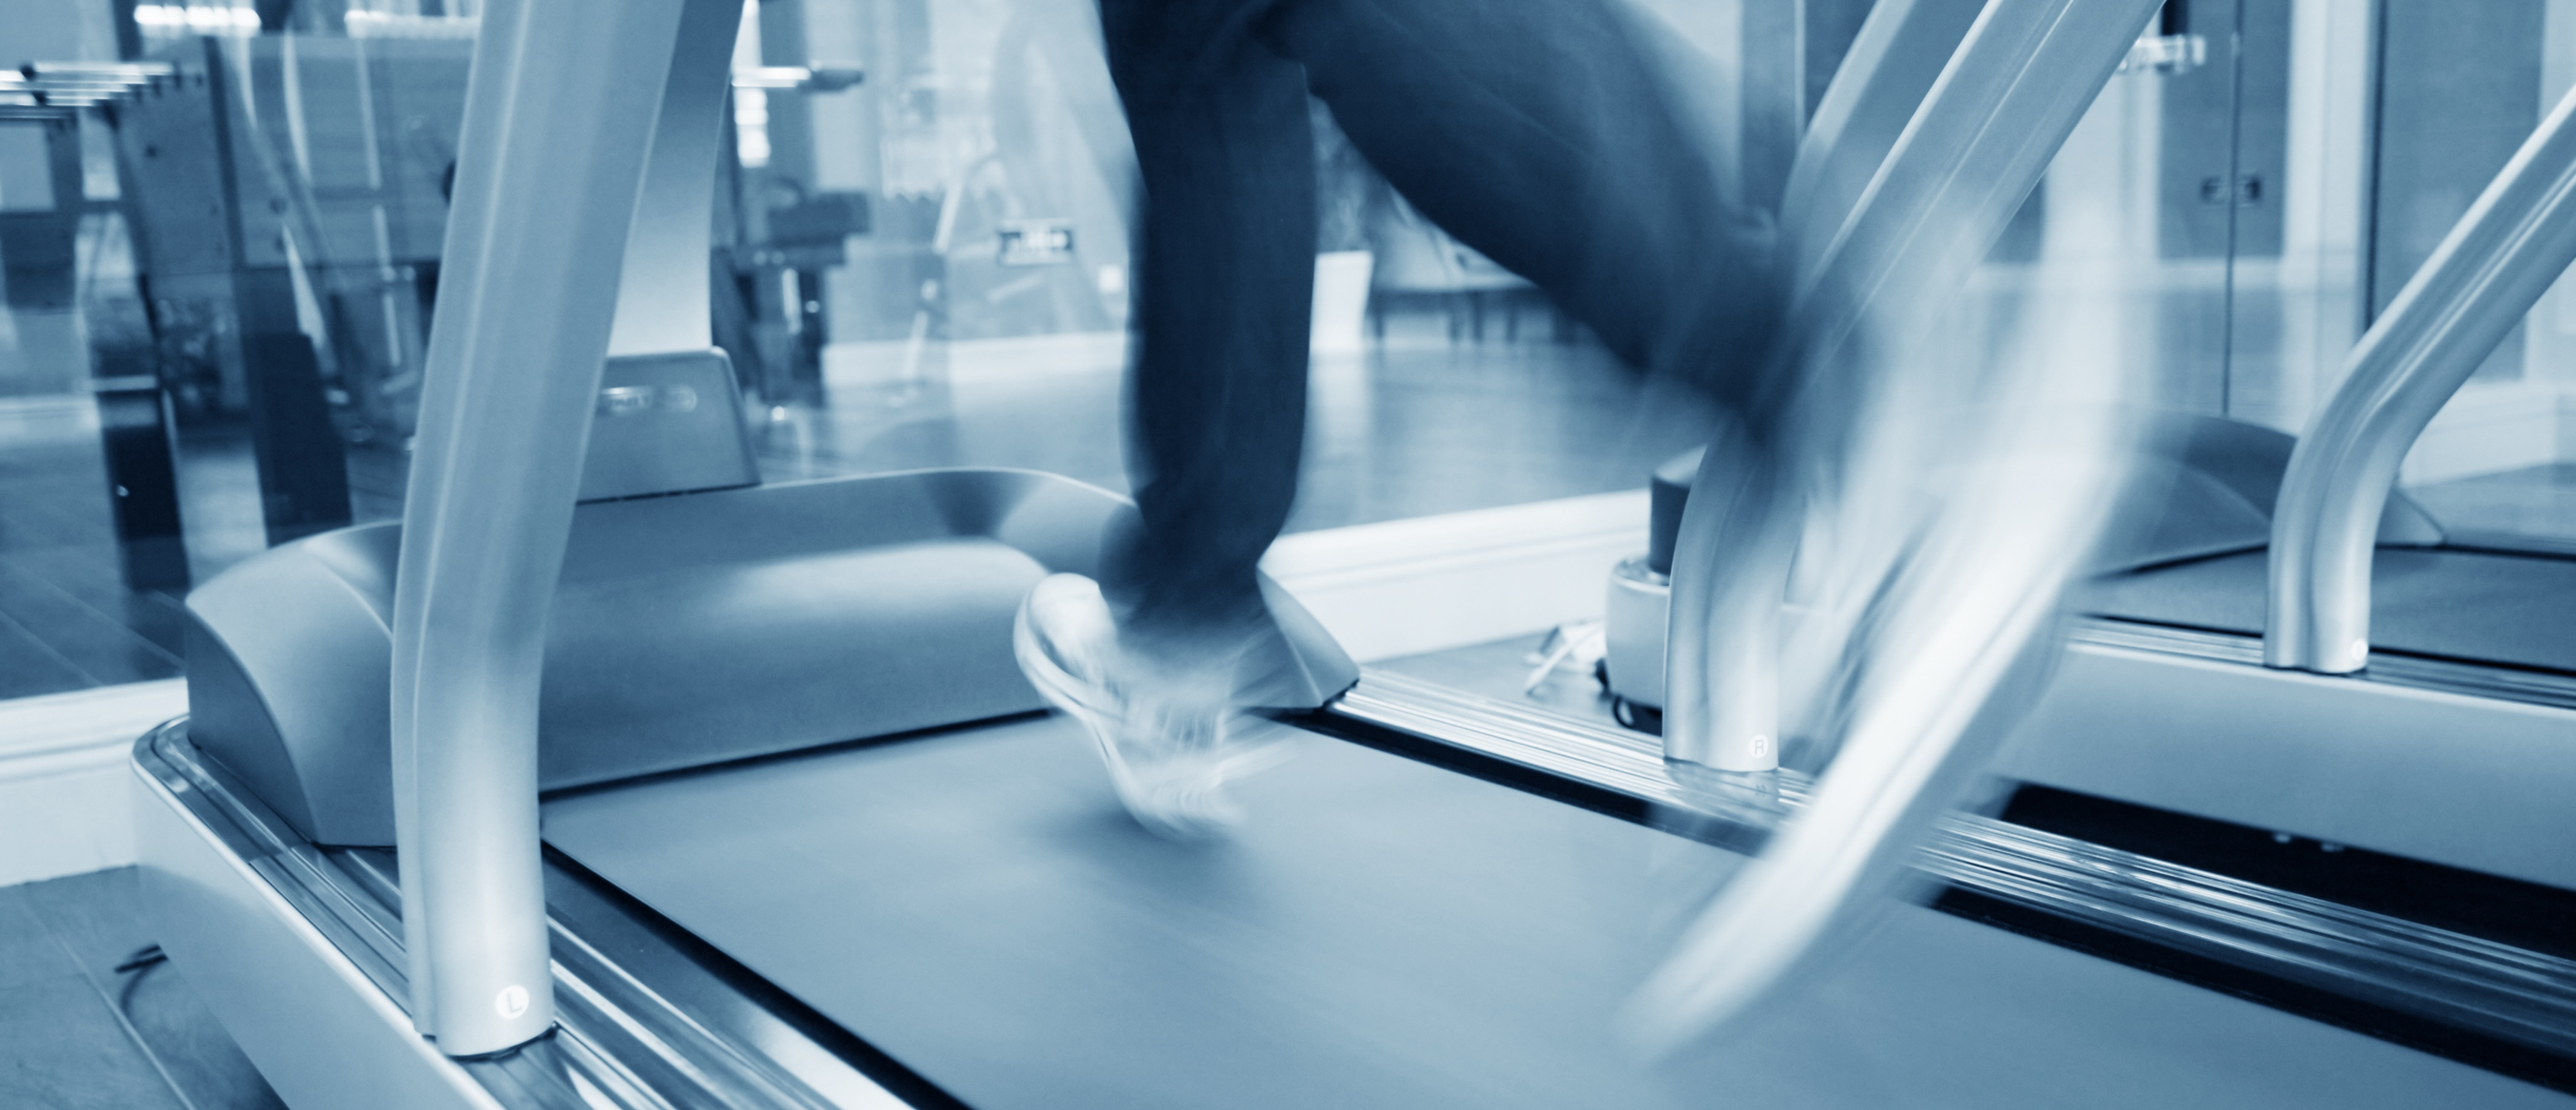 Treadmill Workout Tracking